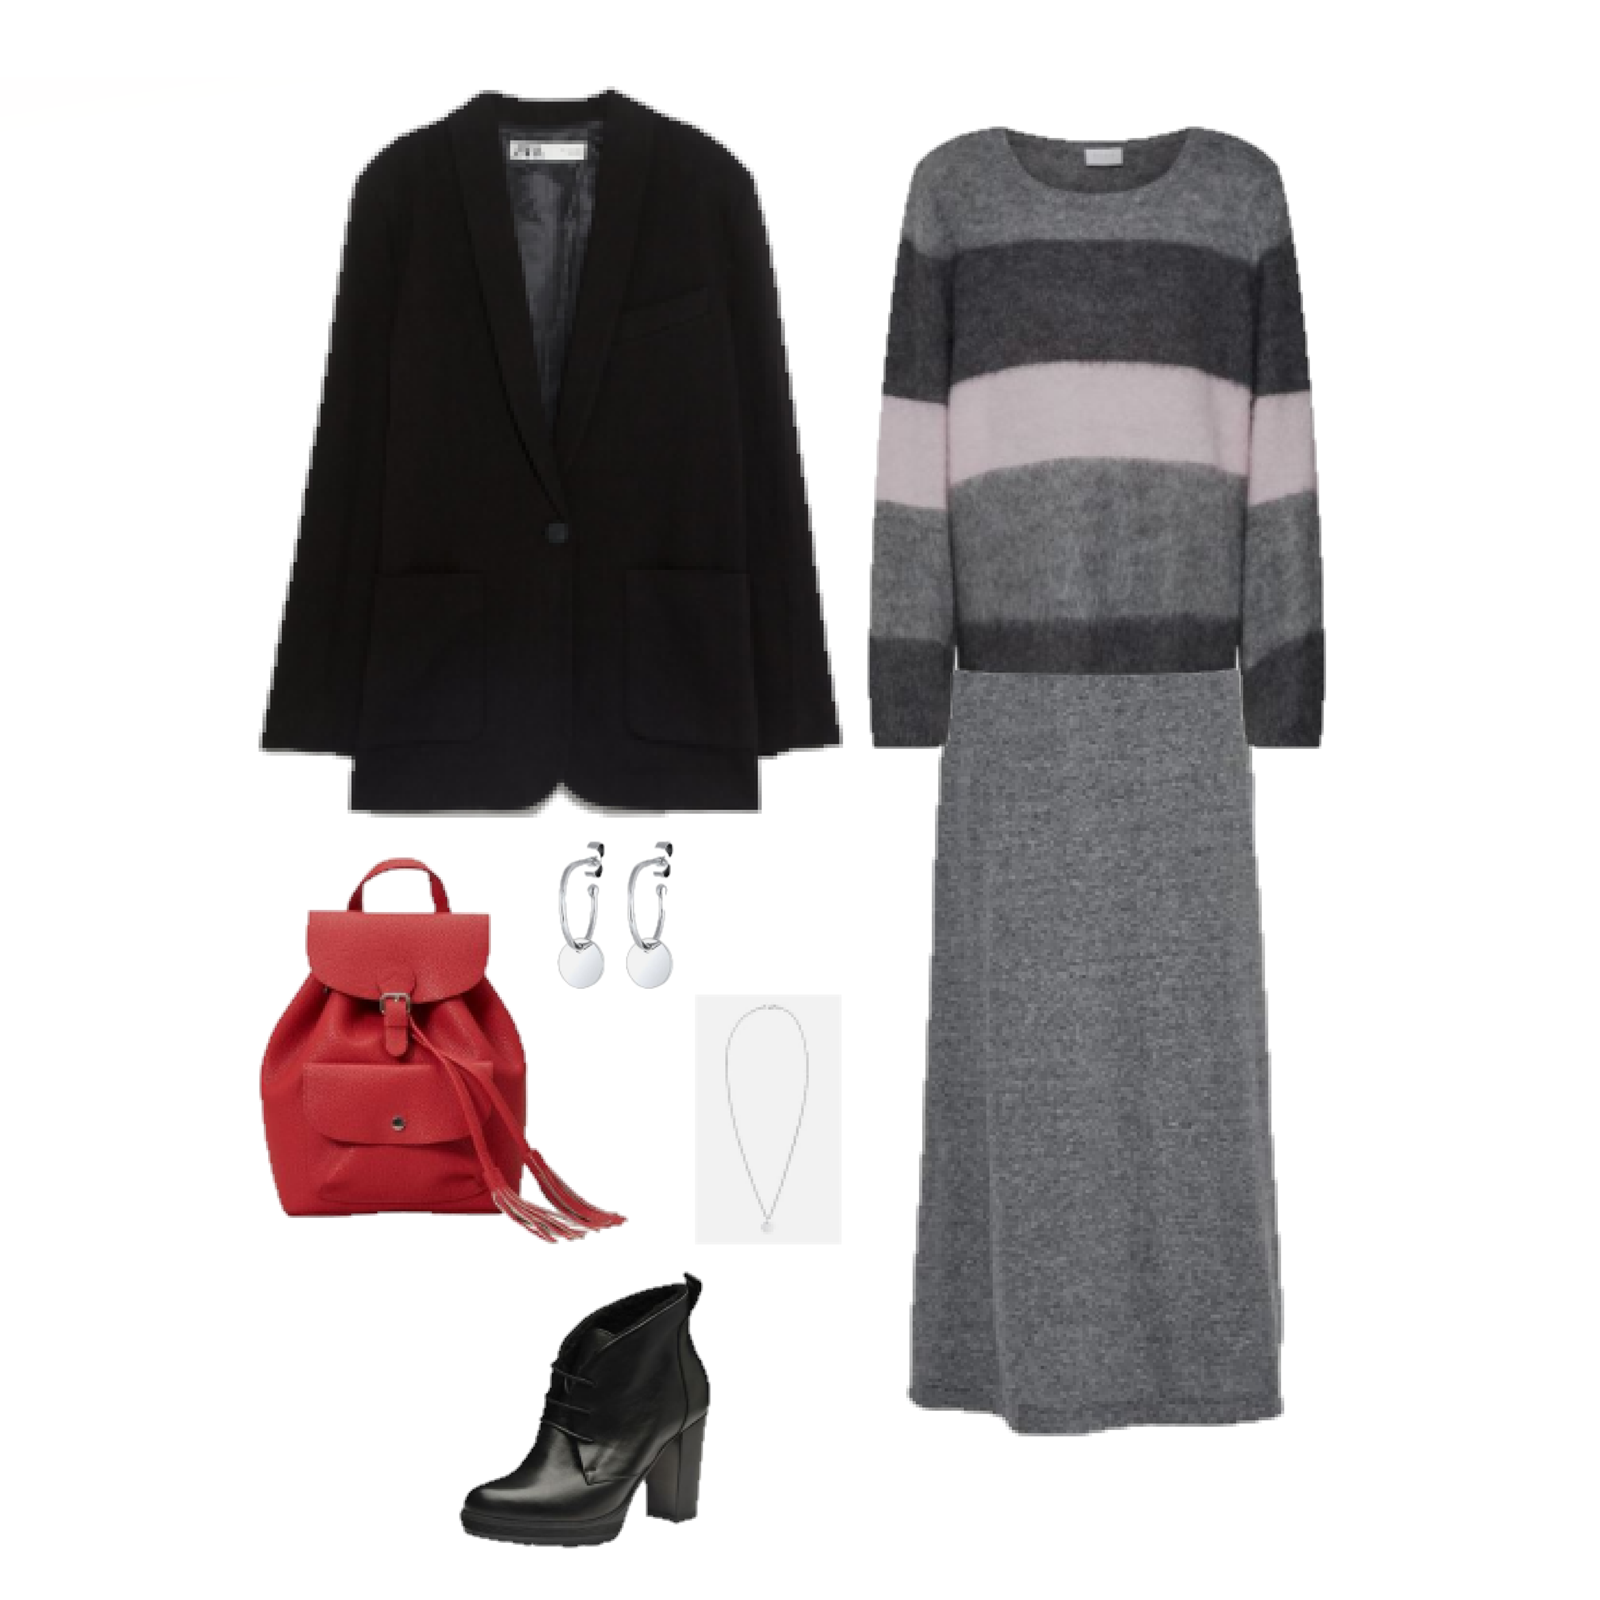 Outfit of the Day: A grey maxi skirt